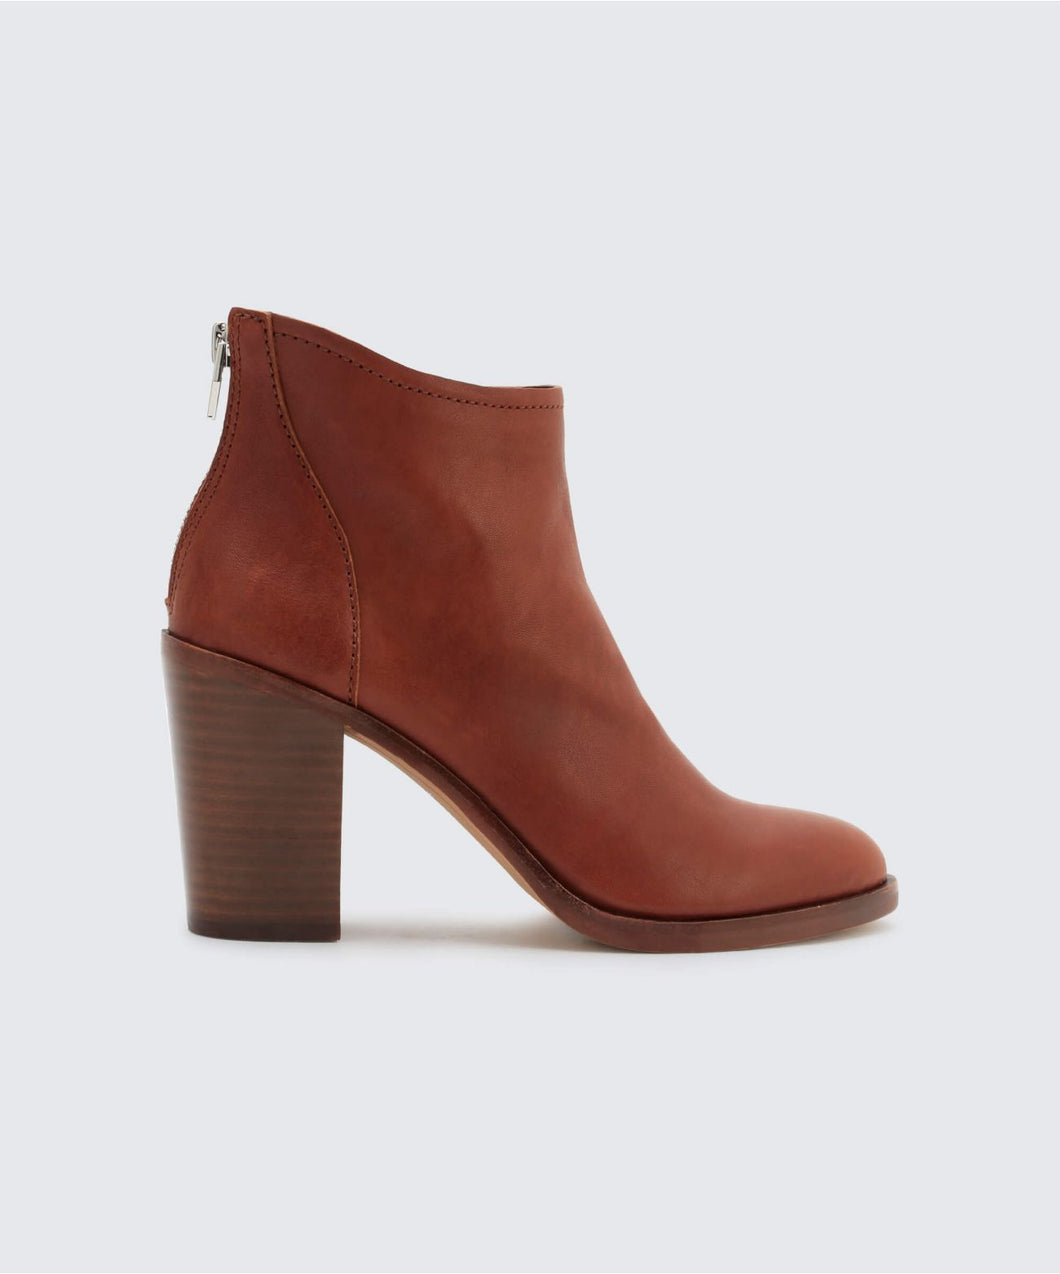 STEVIE BOOTIES COGNAC -   Dolce Vita